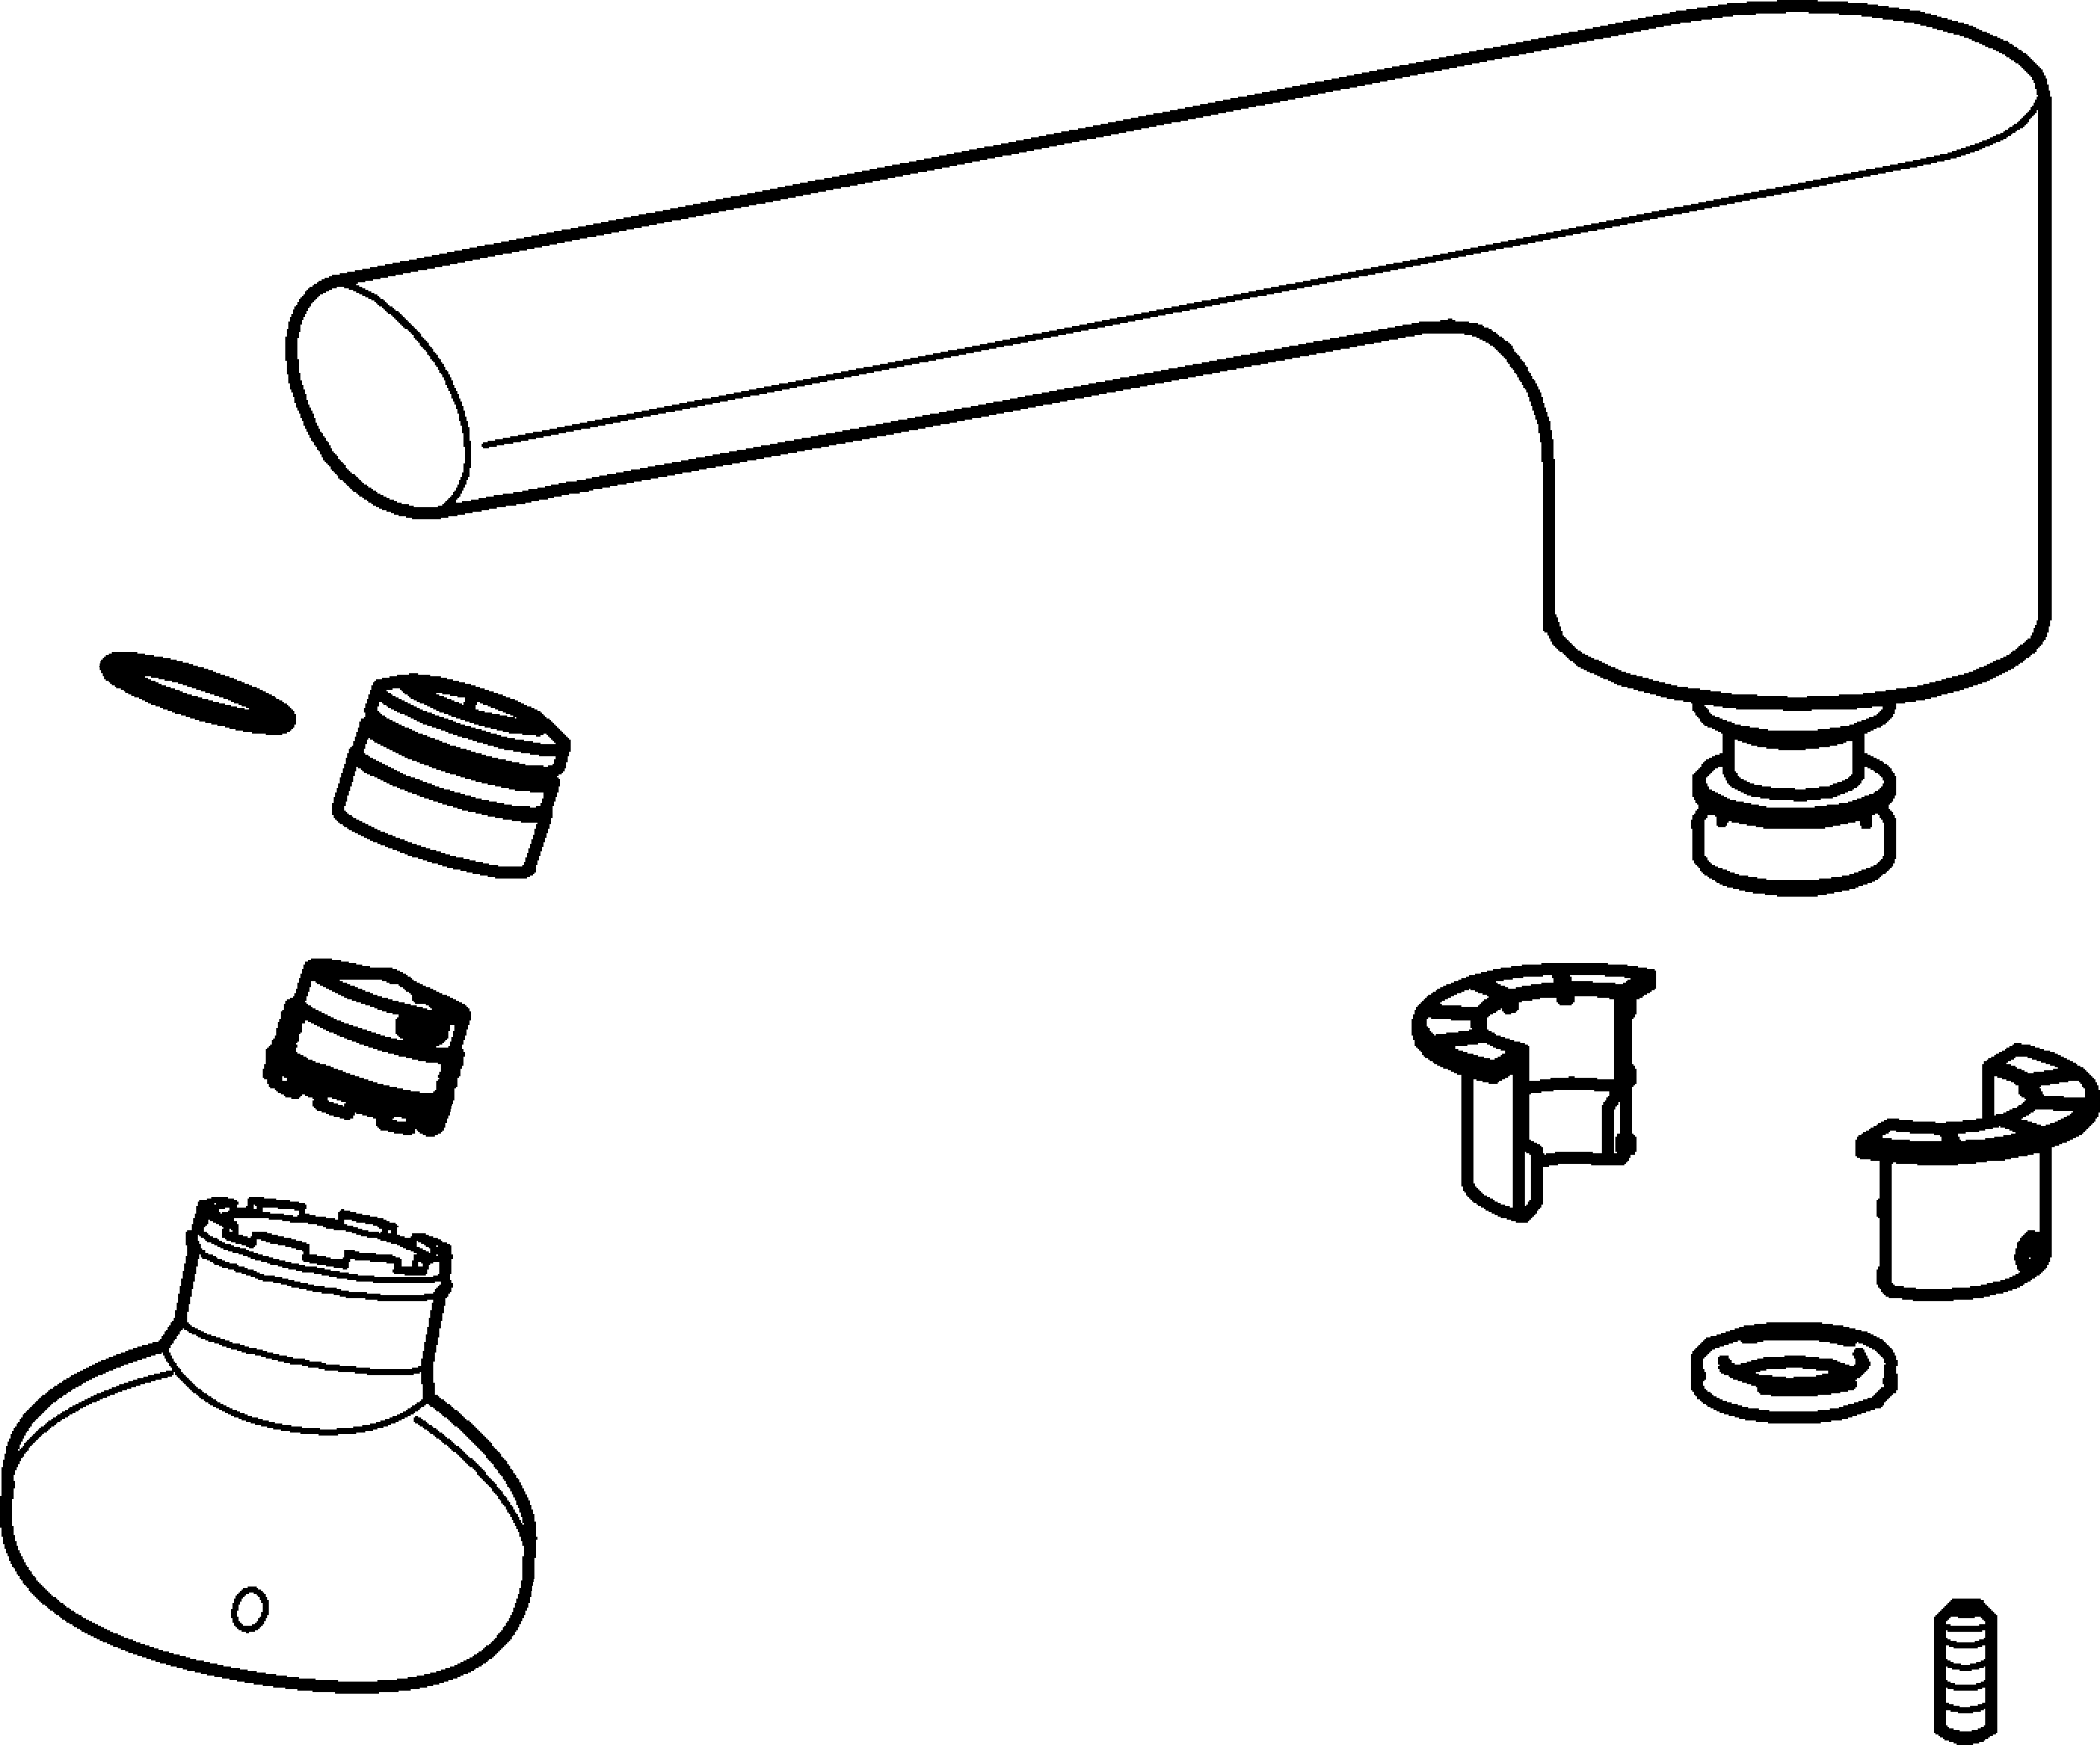 Faucet clipart bathtub faucet. Products hansa swivel spout